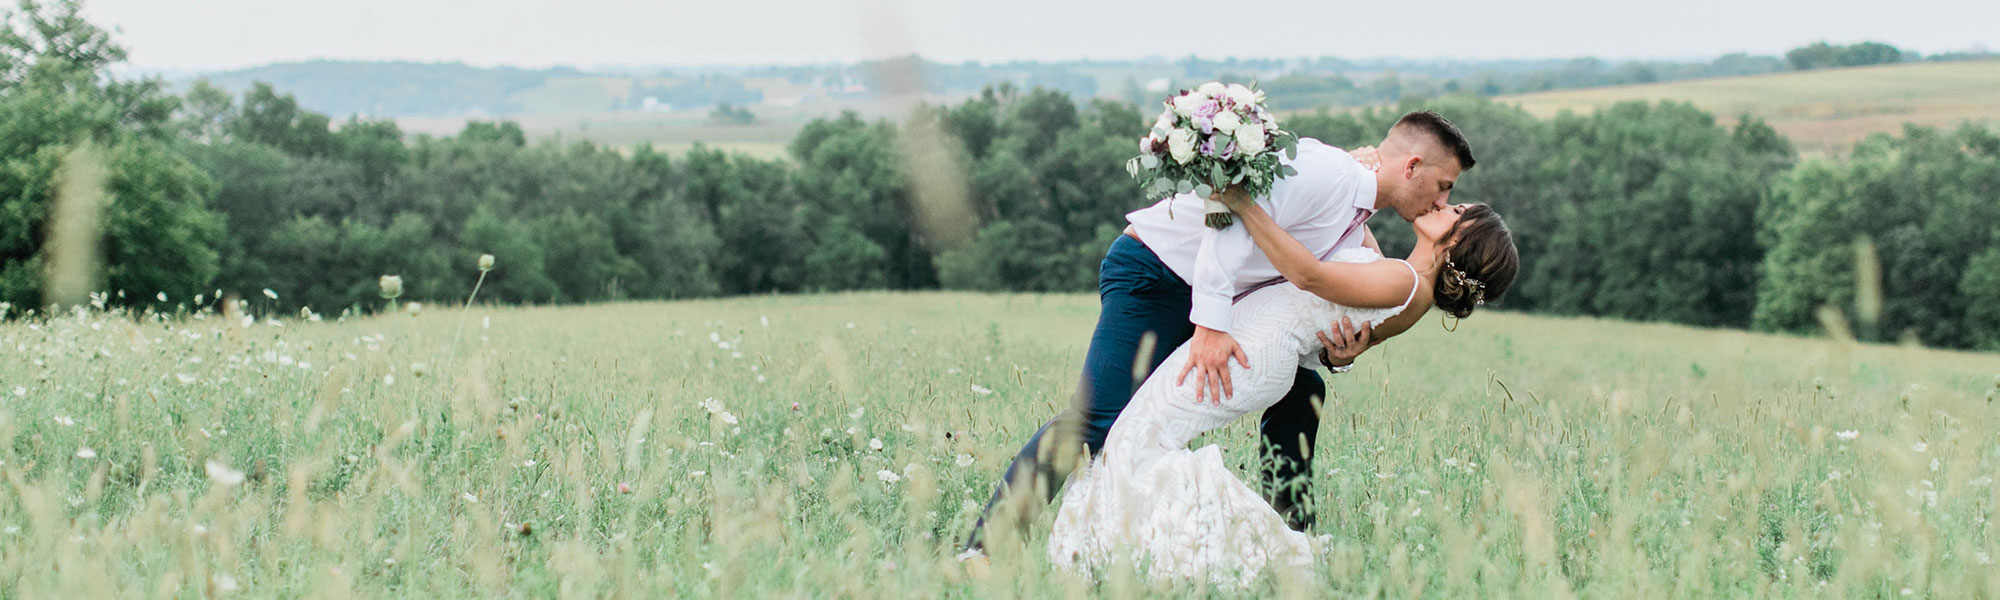 Bride and groom on sofa in a field